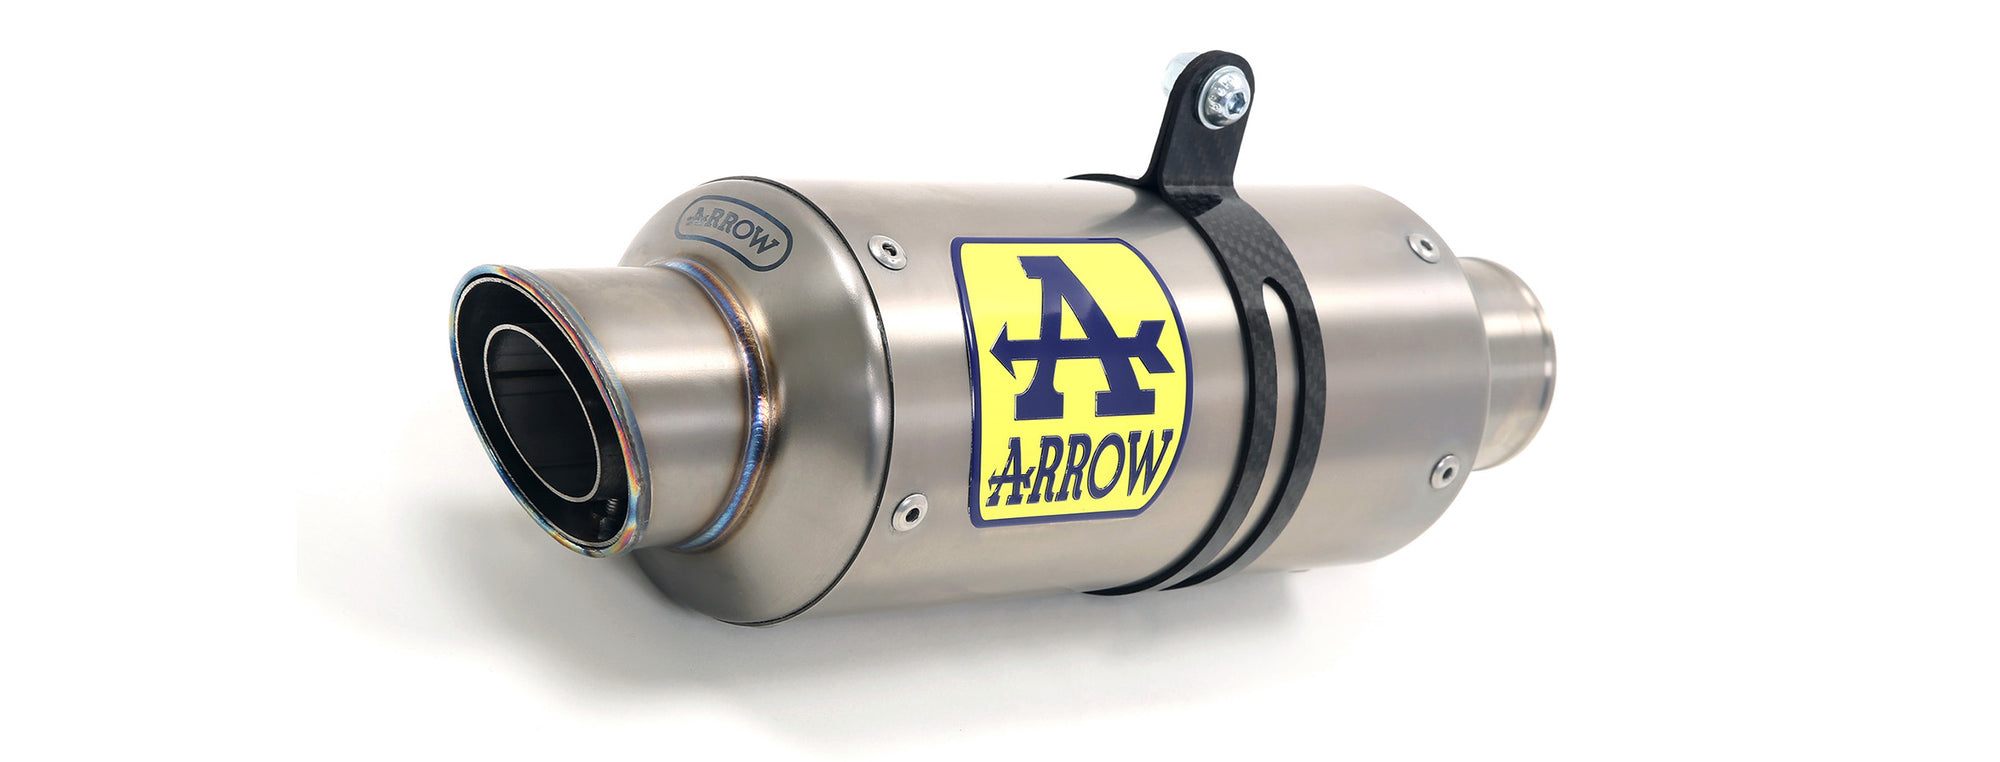 GP2 Exhaust - Honda, Exhaust Silencer, Arrow Exhausts - Race and Trackday Parts